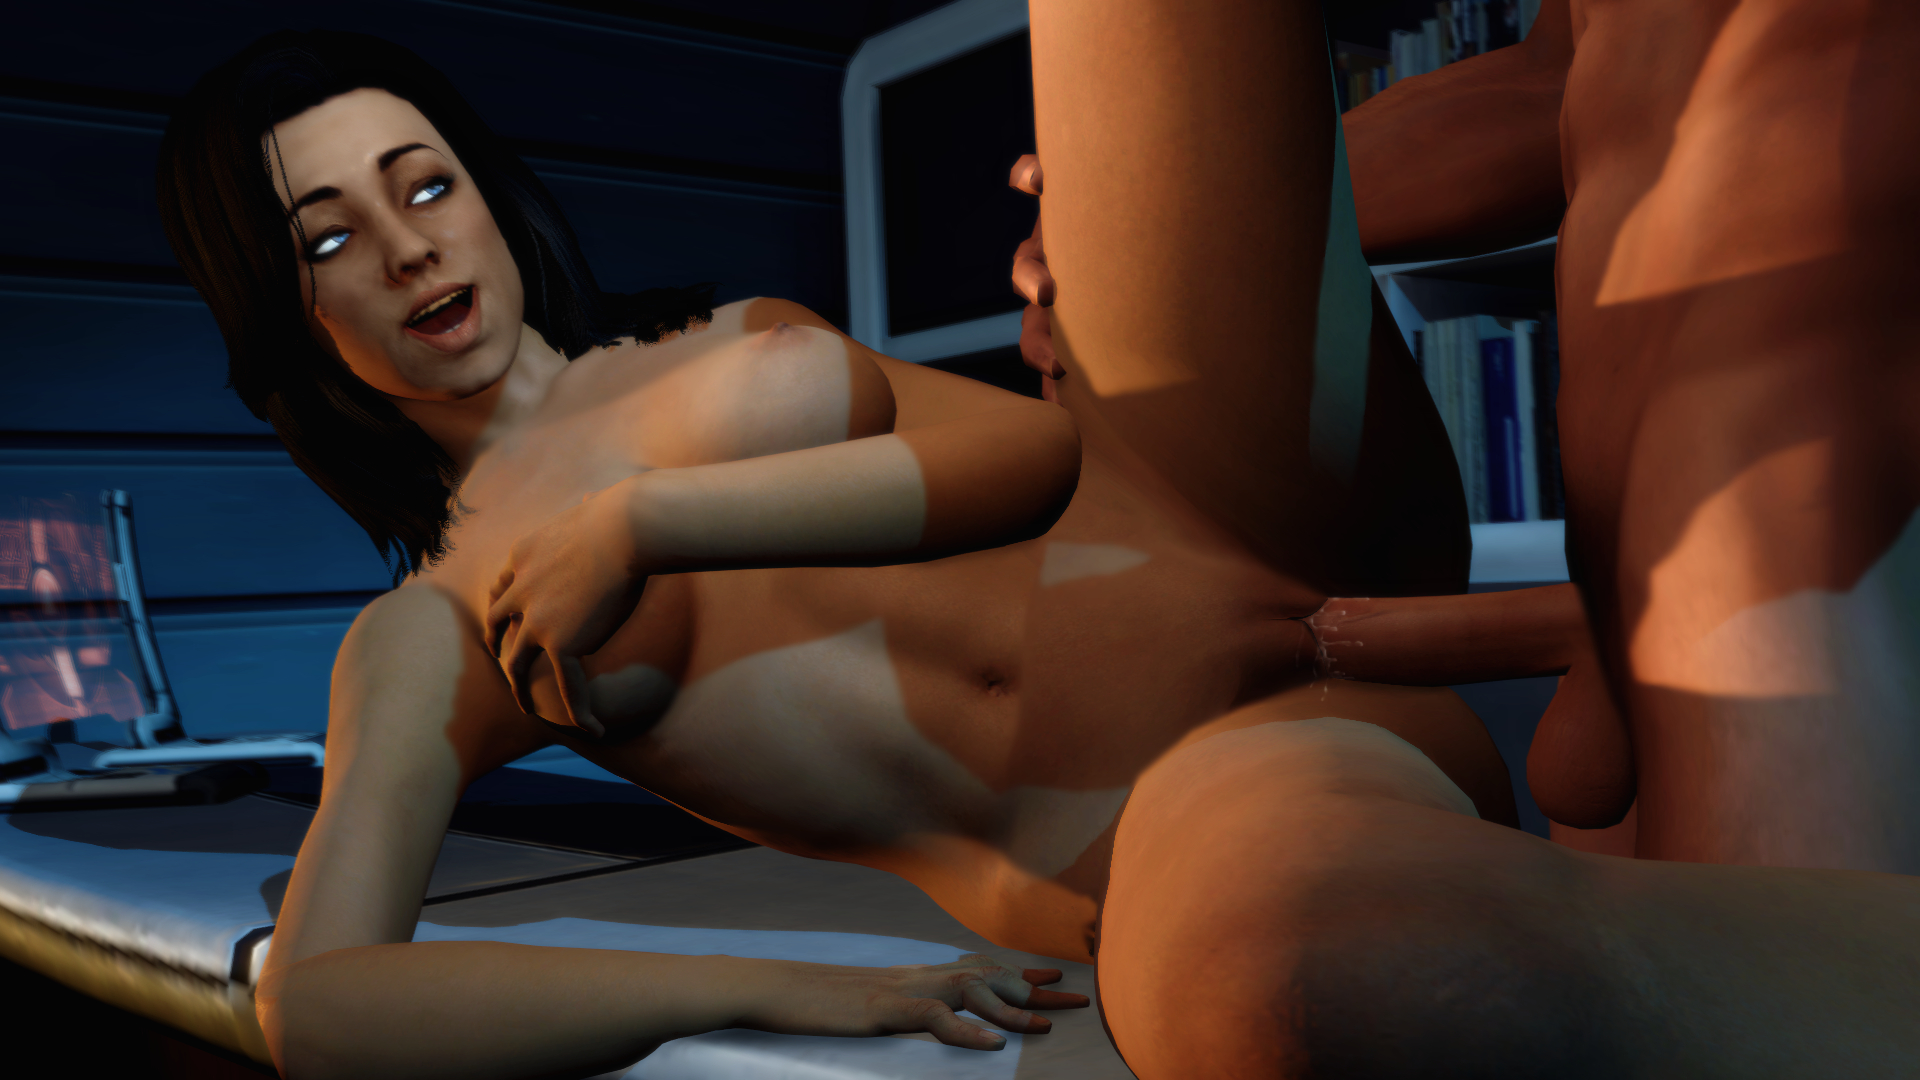 Mass effect sex villa mod fucks tube